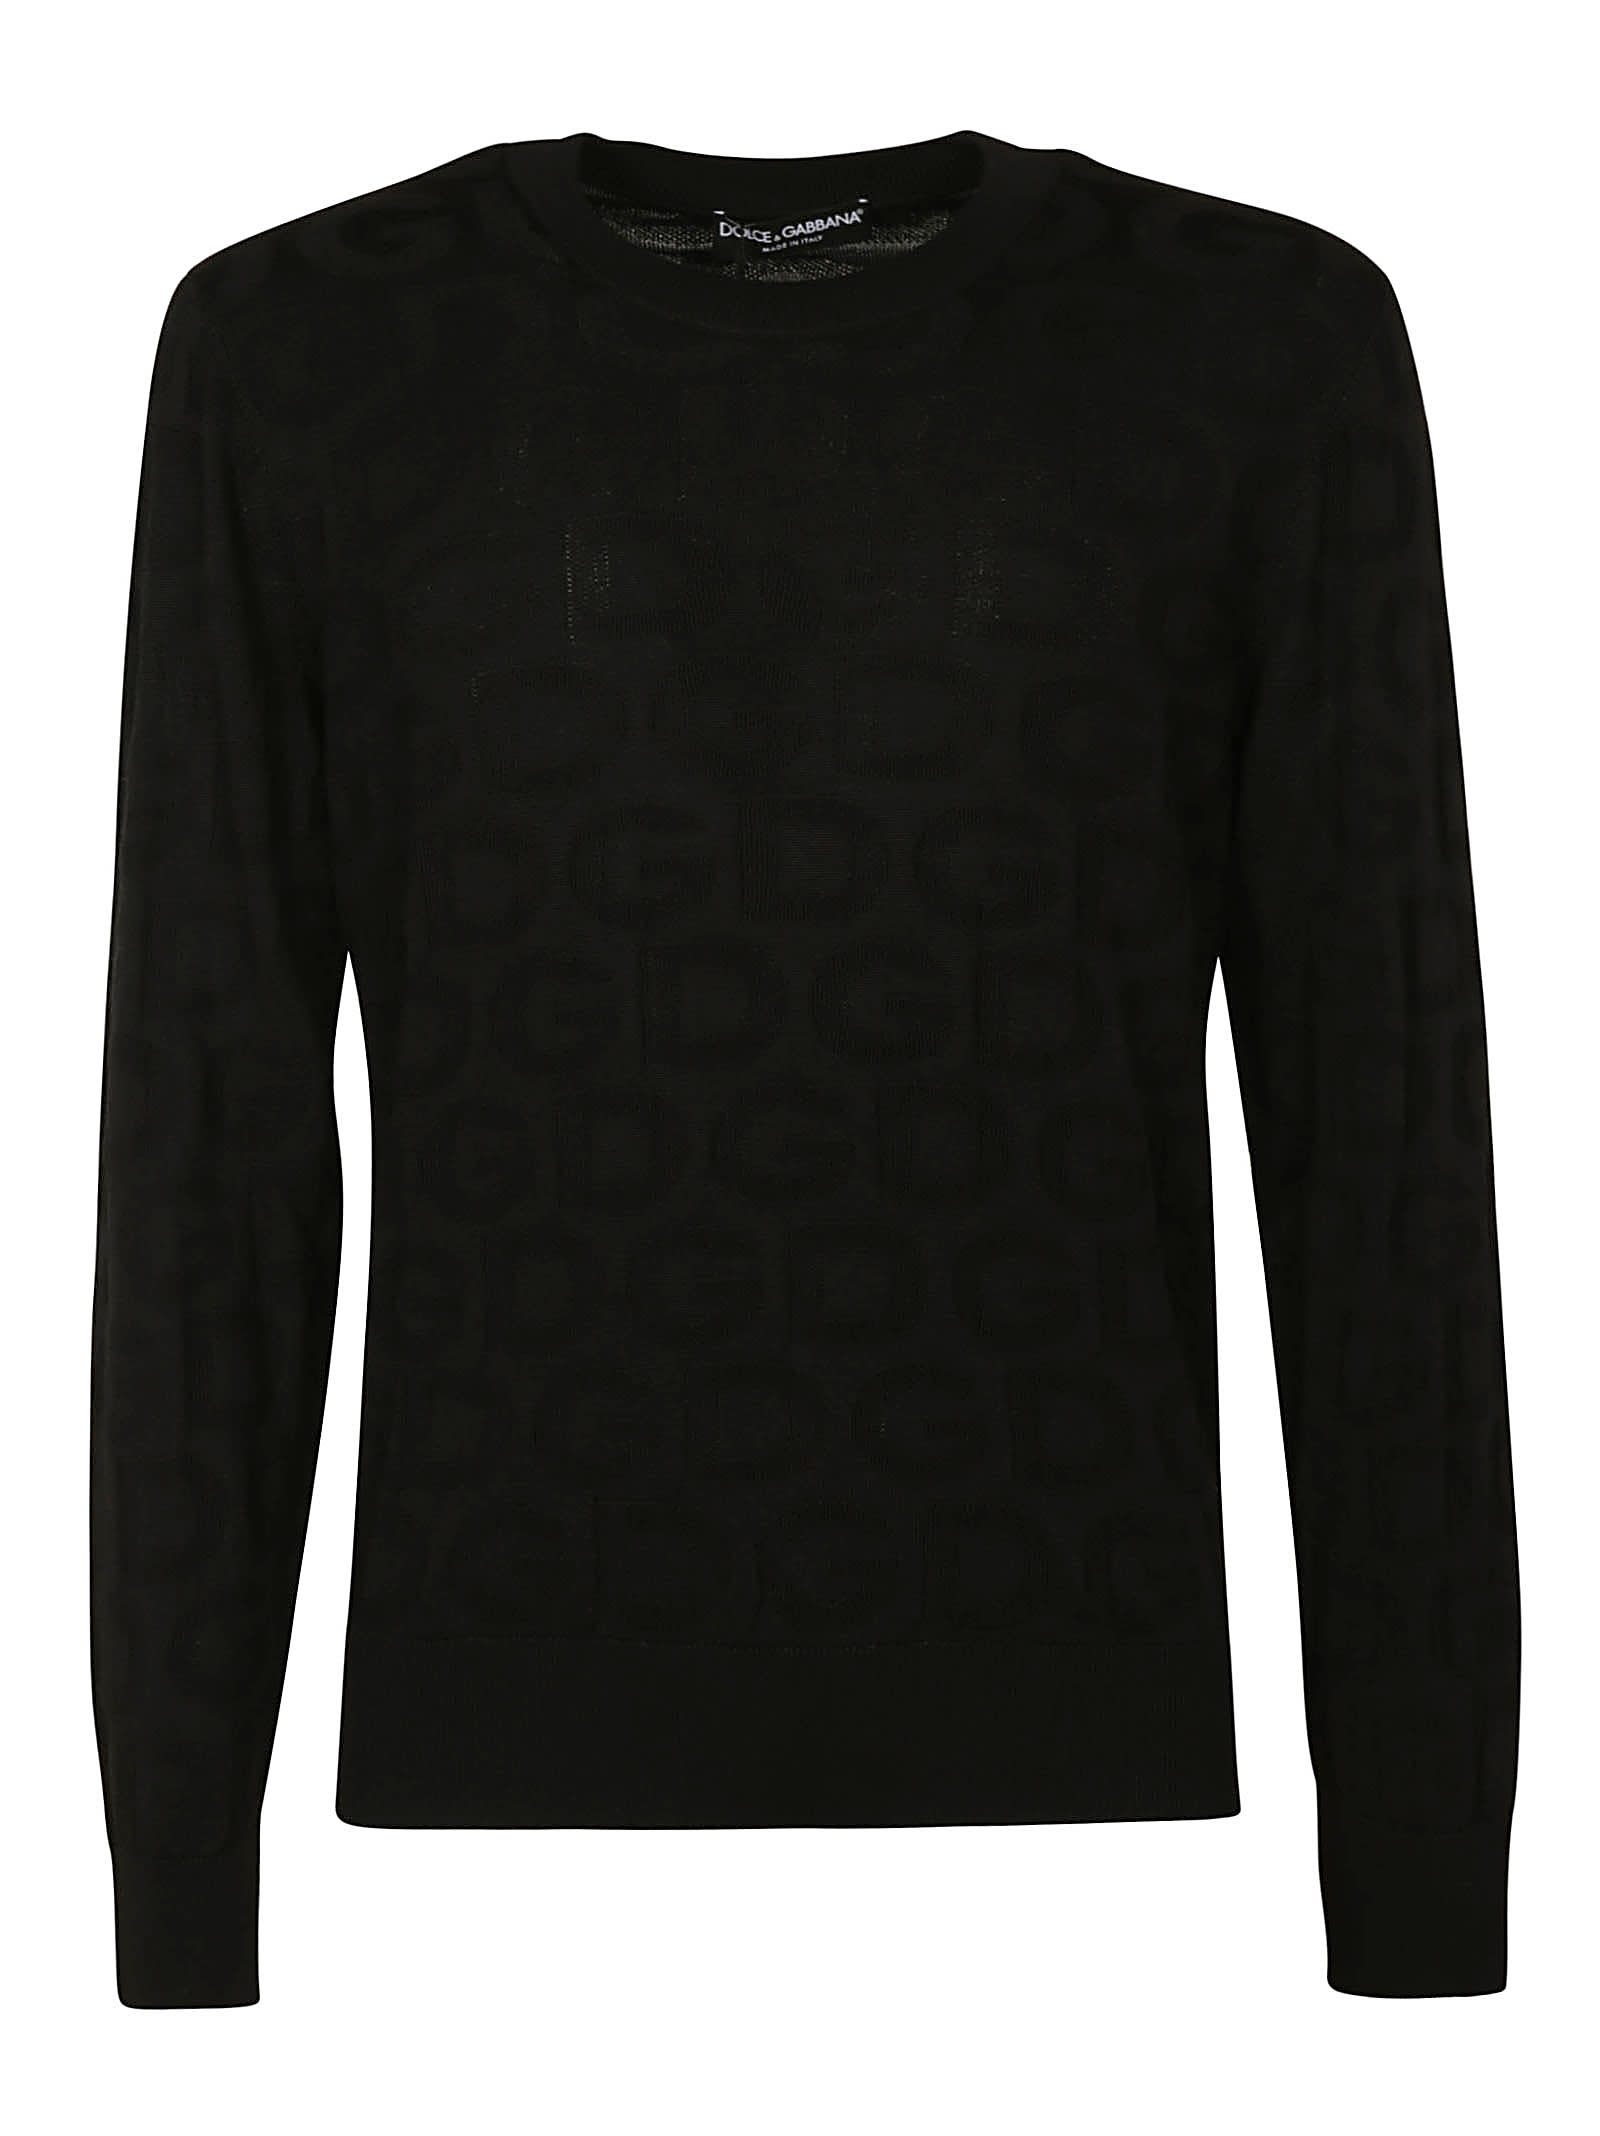 Dolce & Gabbana Silks ALL-OVER LOGO EMBROIDERED SWEATER